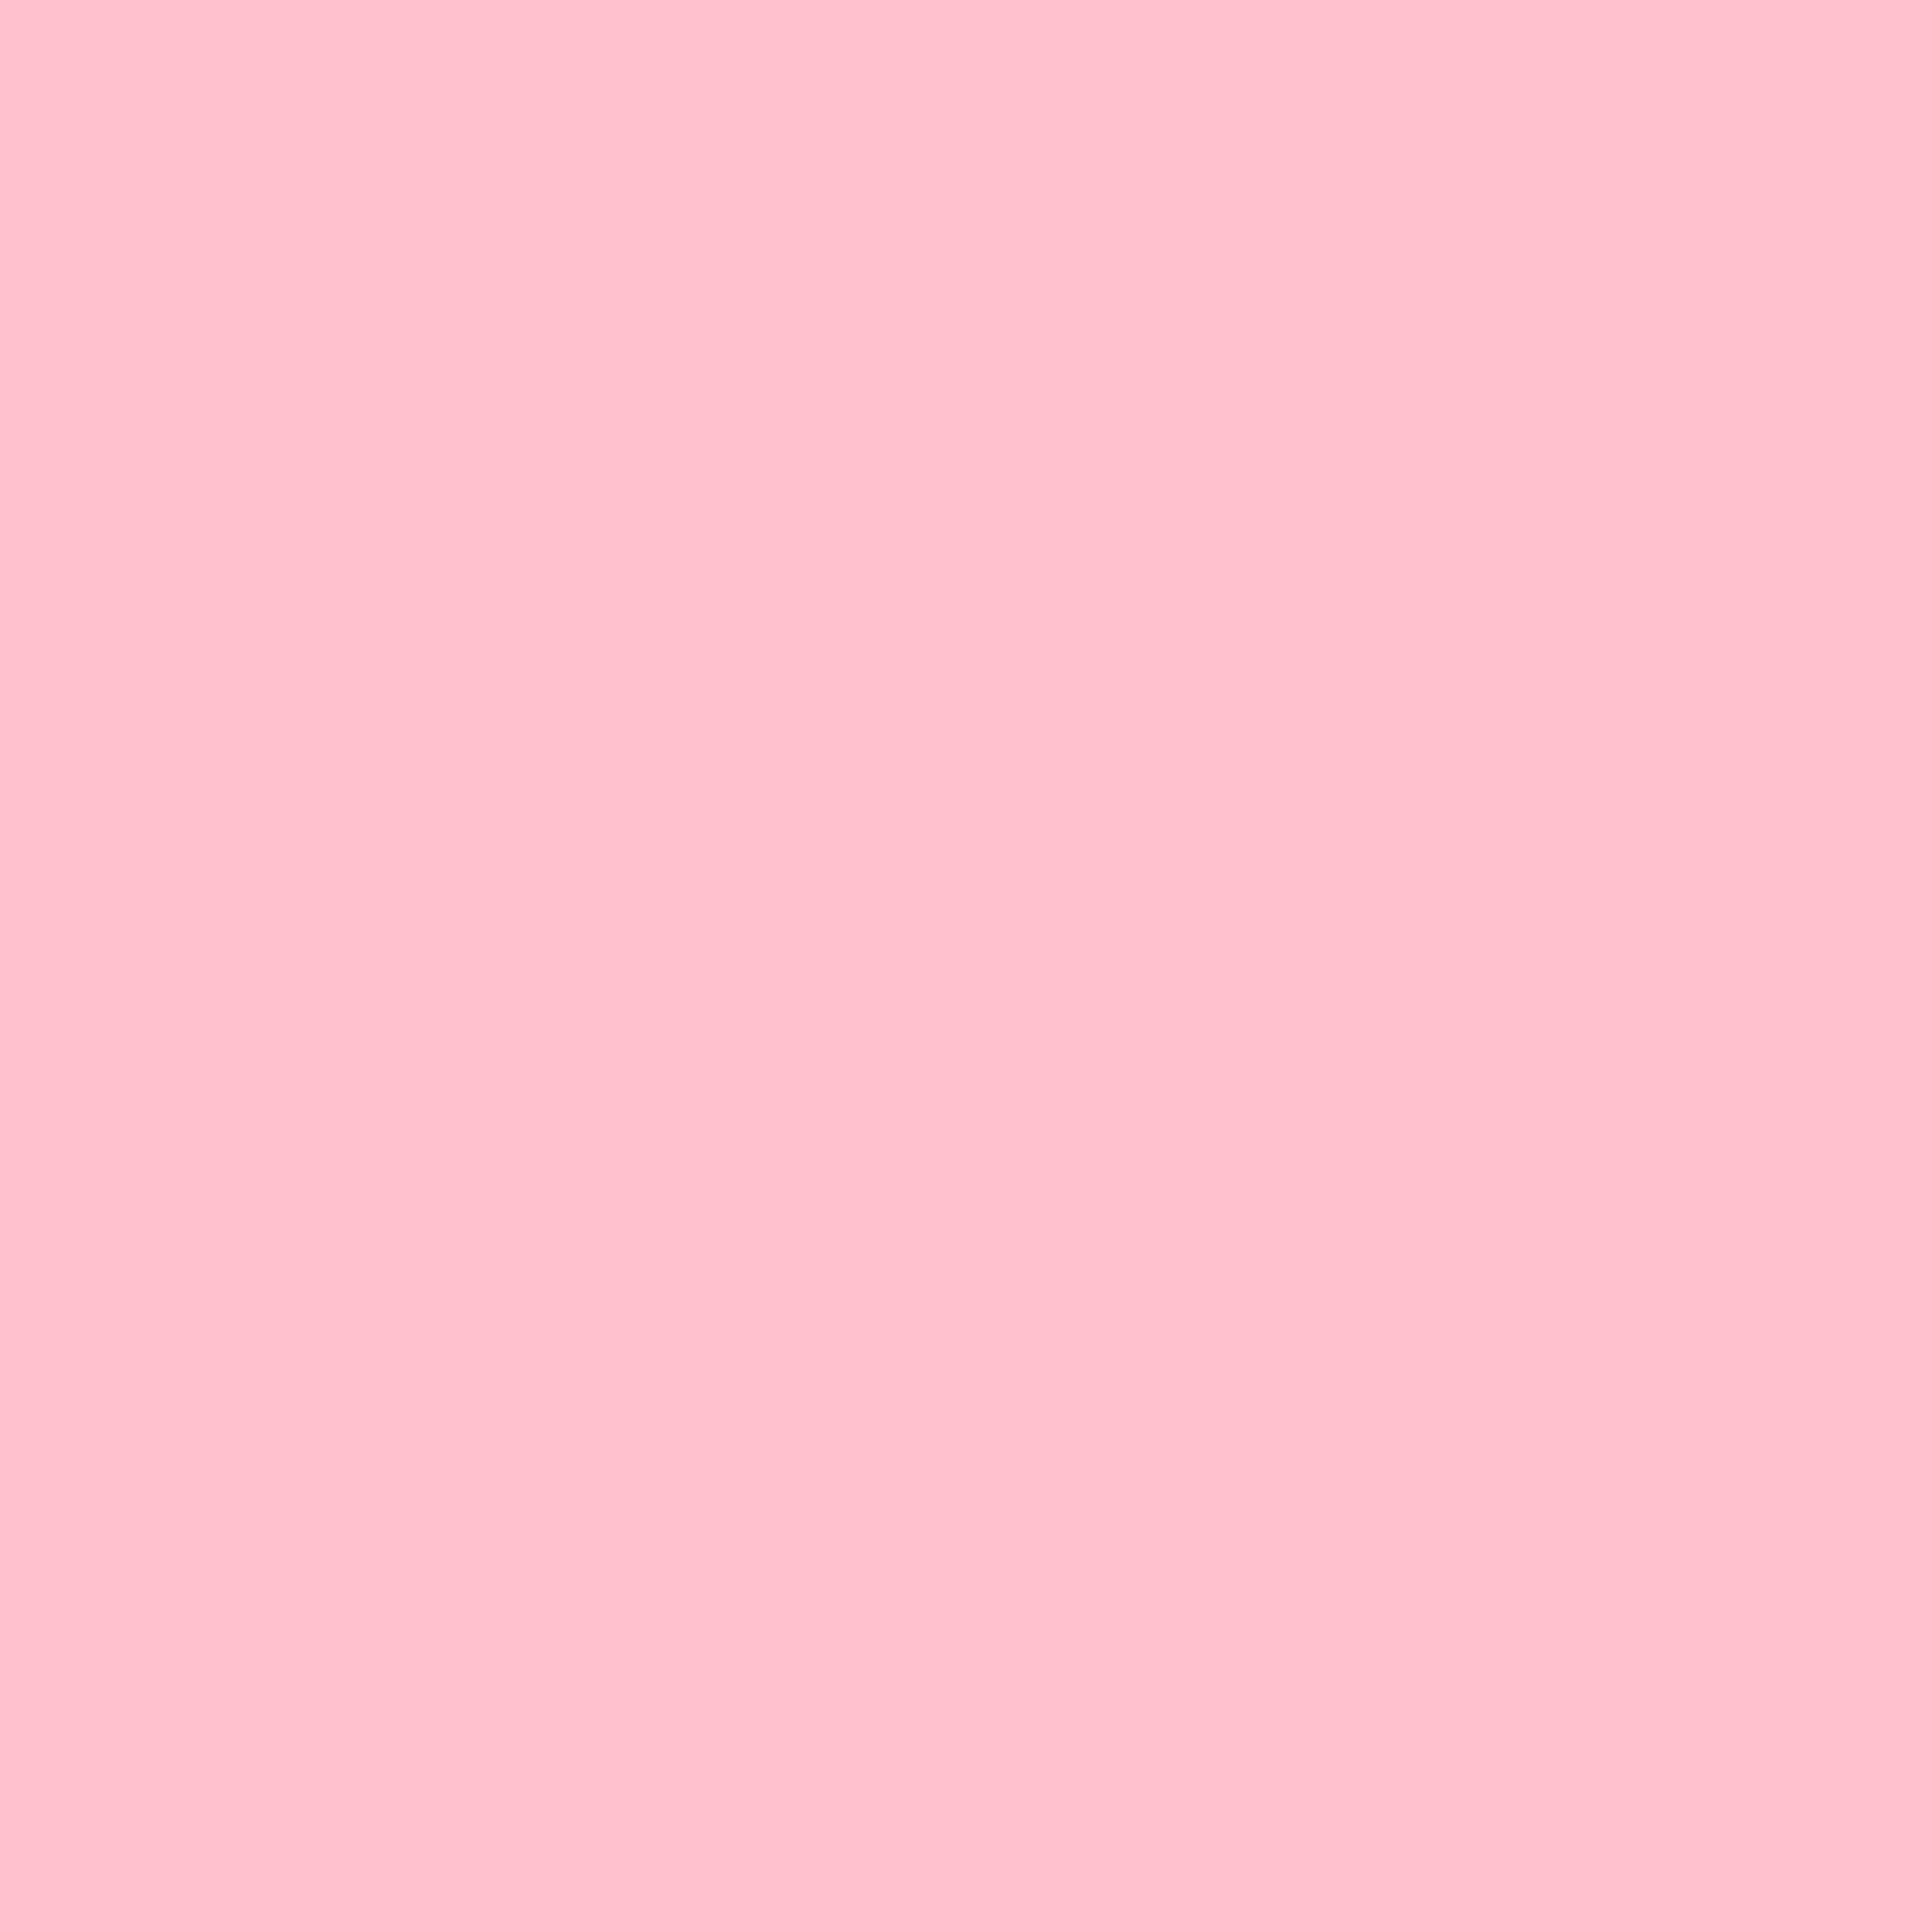 3600x3600 Bubble Gum Solid Color Background